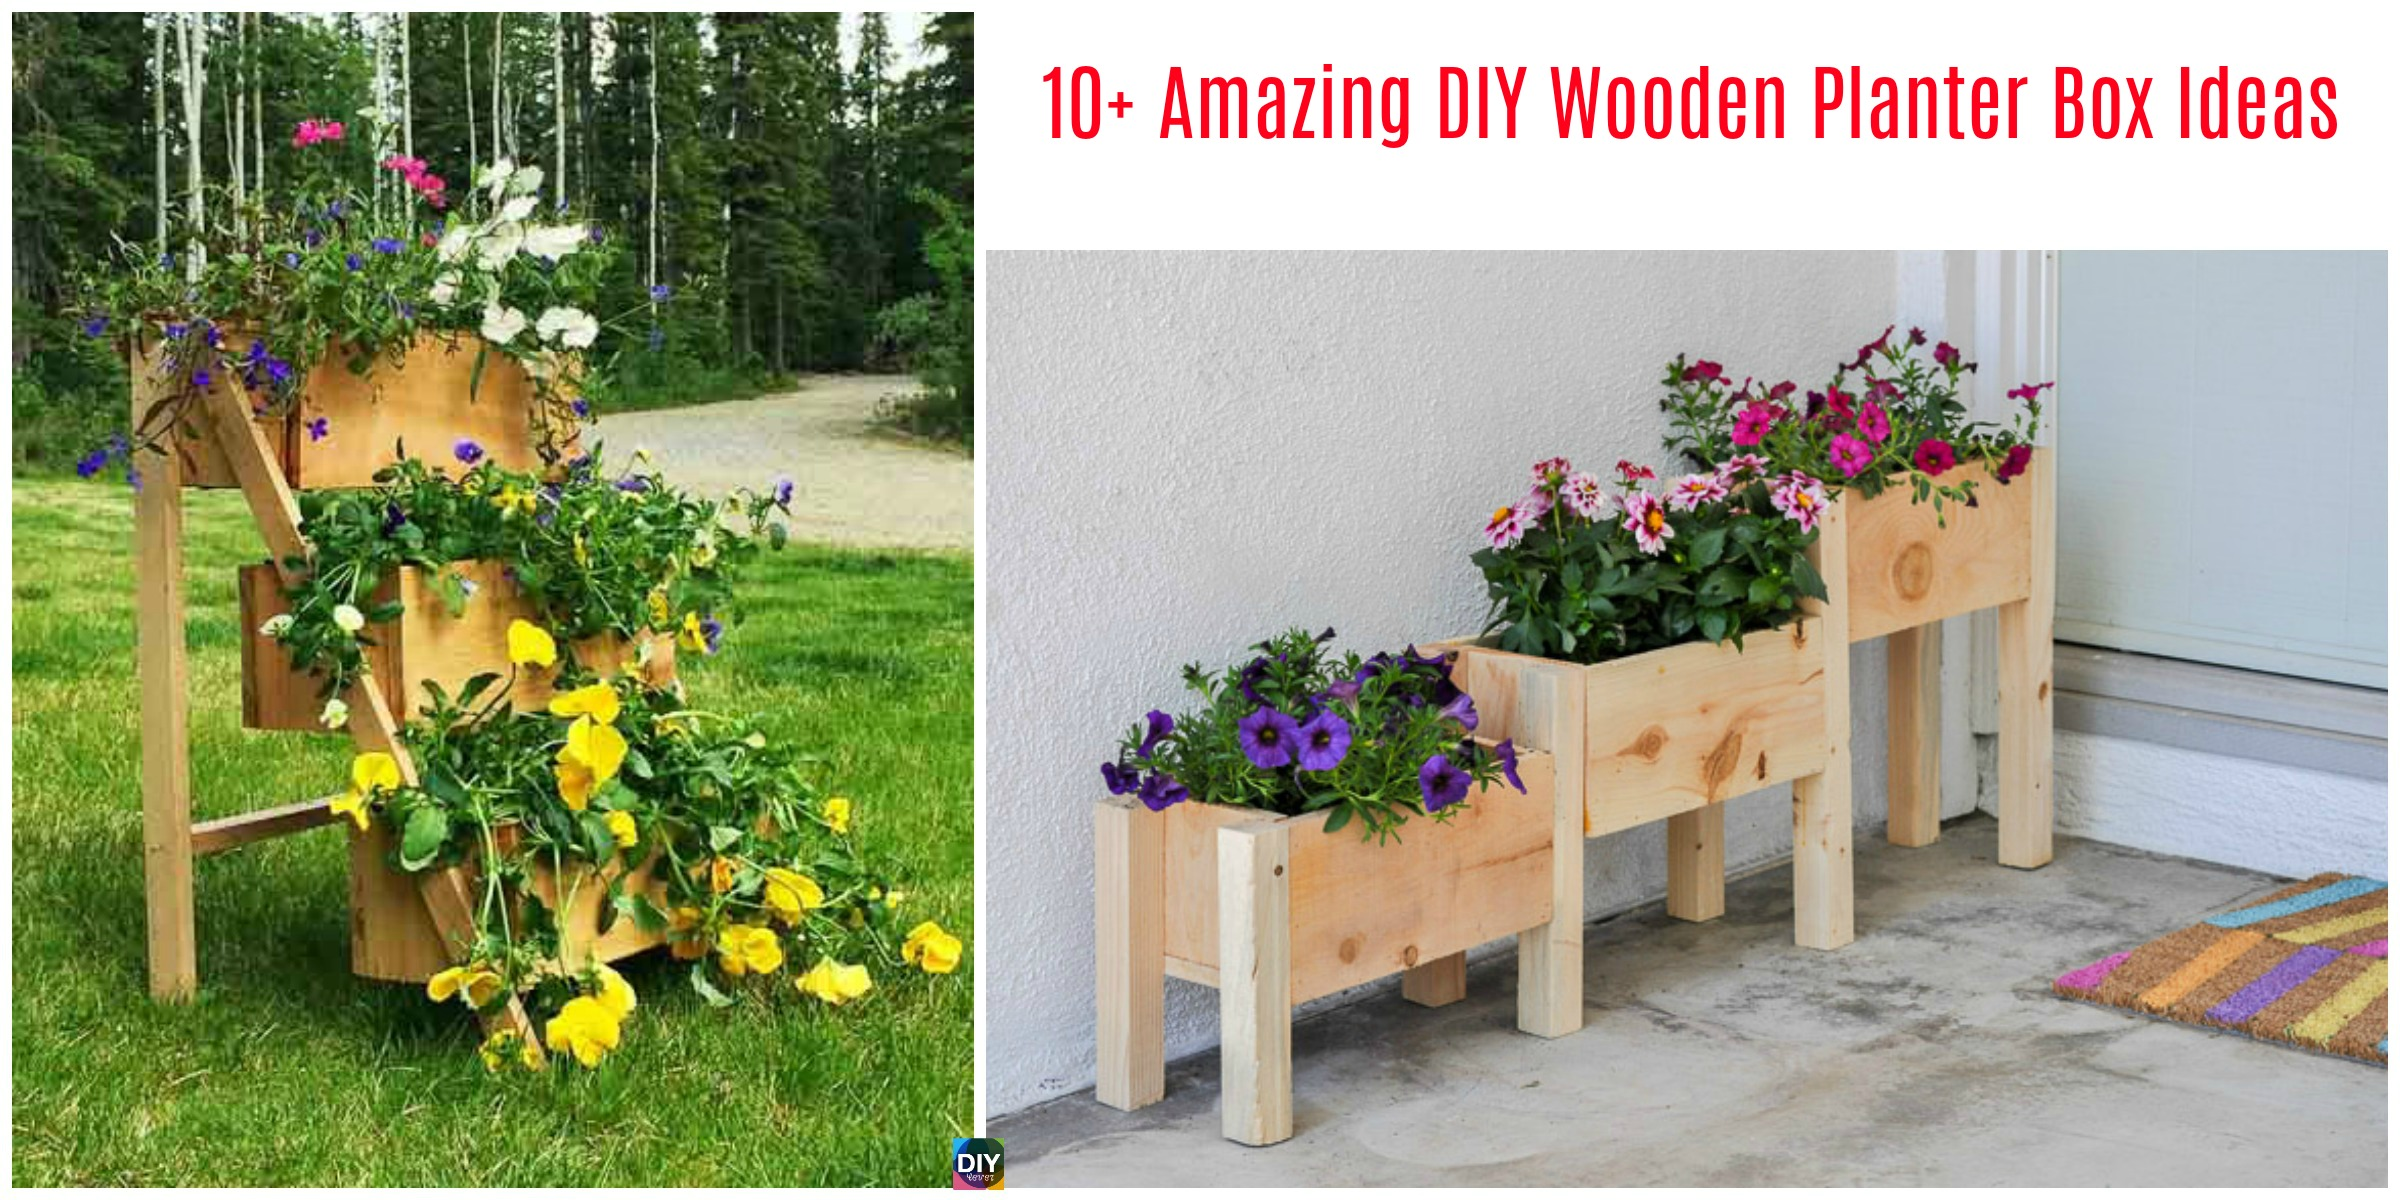 10+ Amazing DIY Wooden Planter Box Ideas